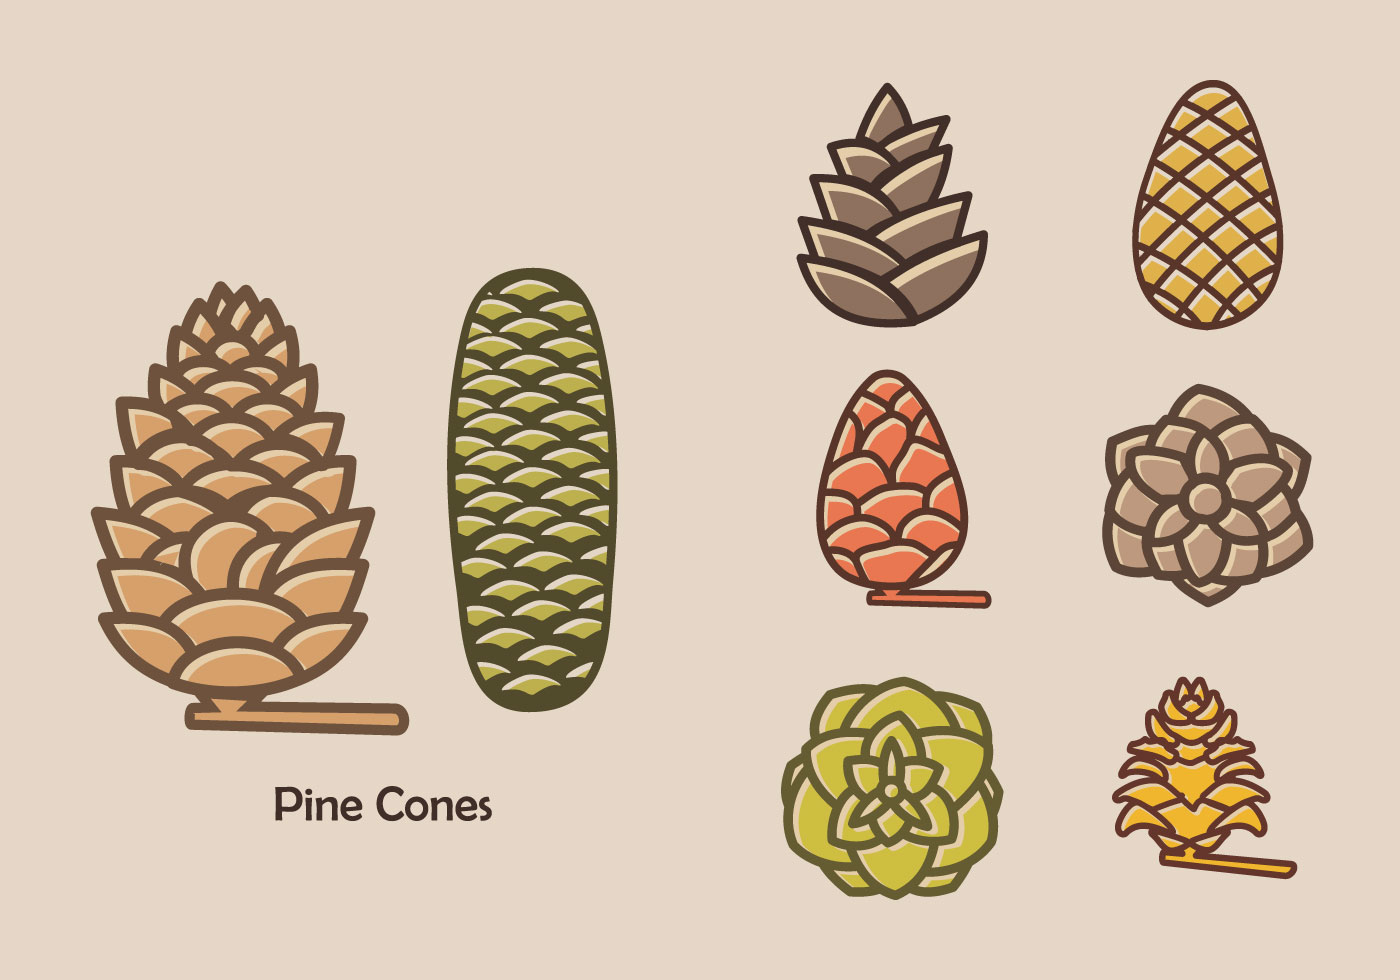 Colorful Pine Cones Vector Icon - Download Free Vector Art ...